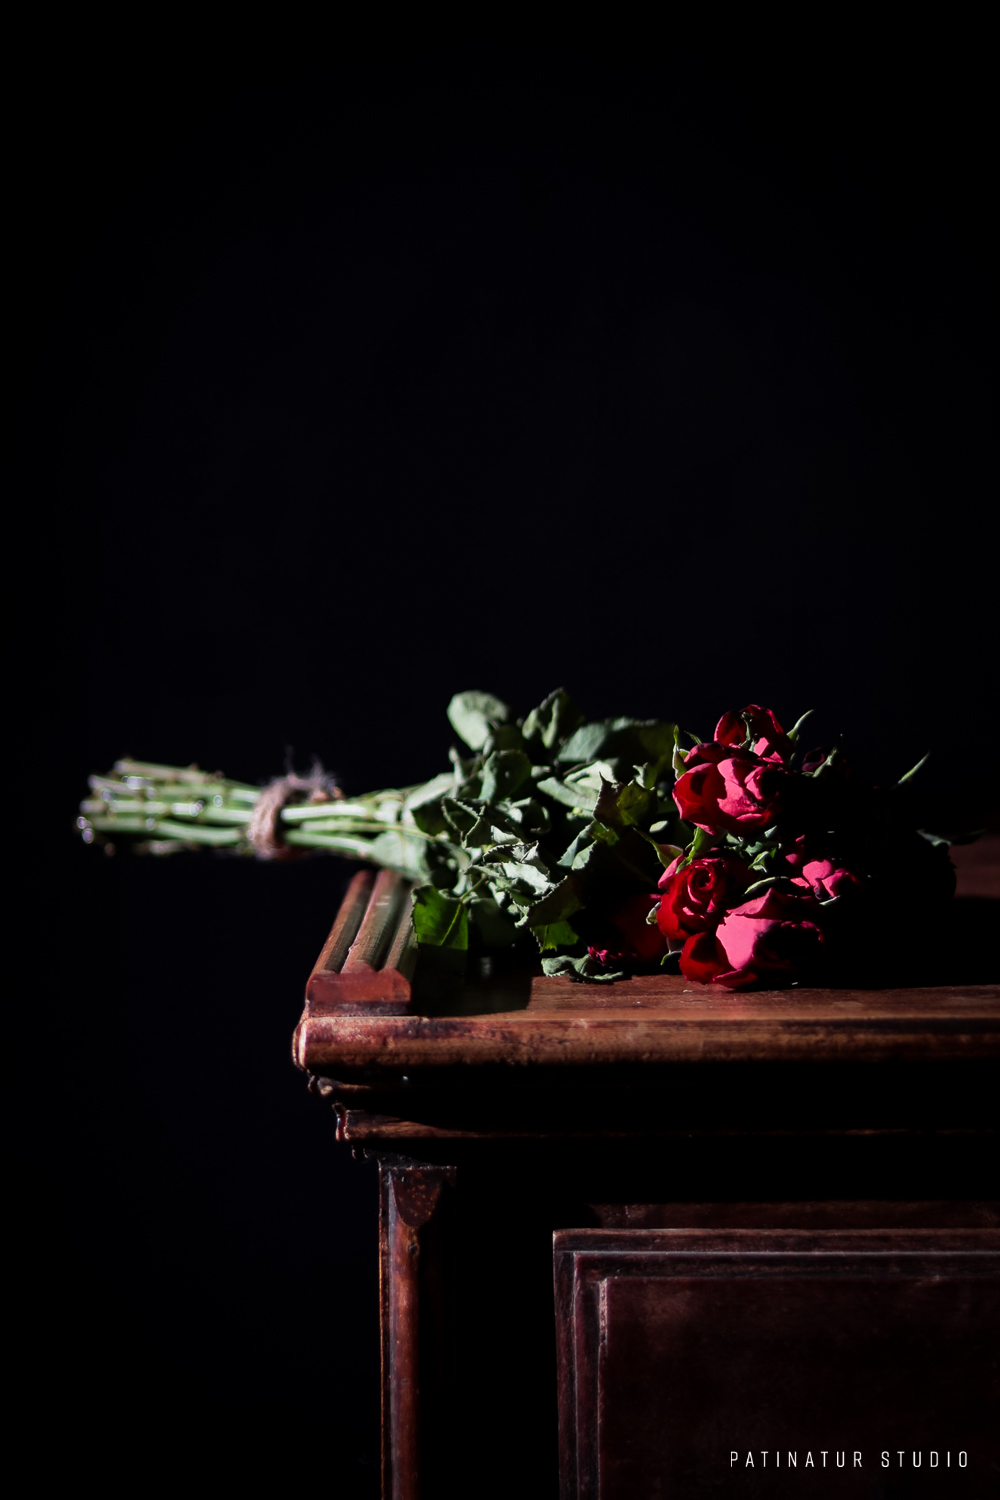 Photo art | Dark and moody still life with red rose bouquet lying on wooden sideboard